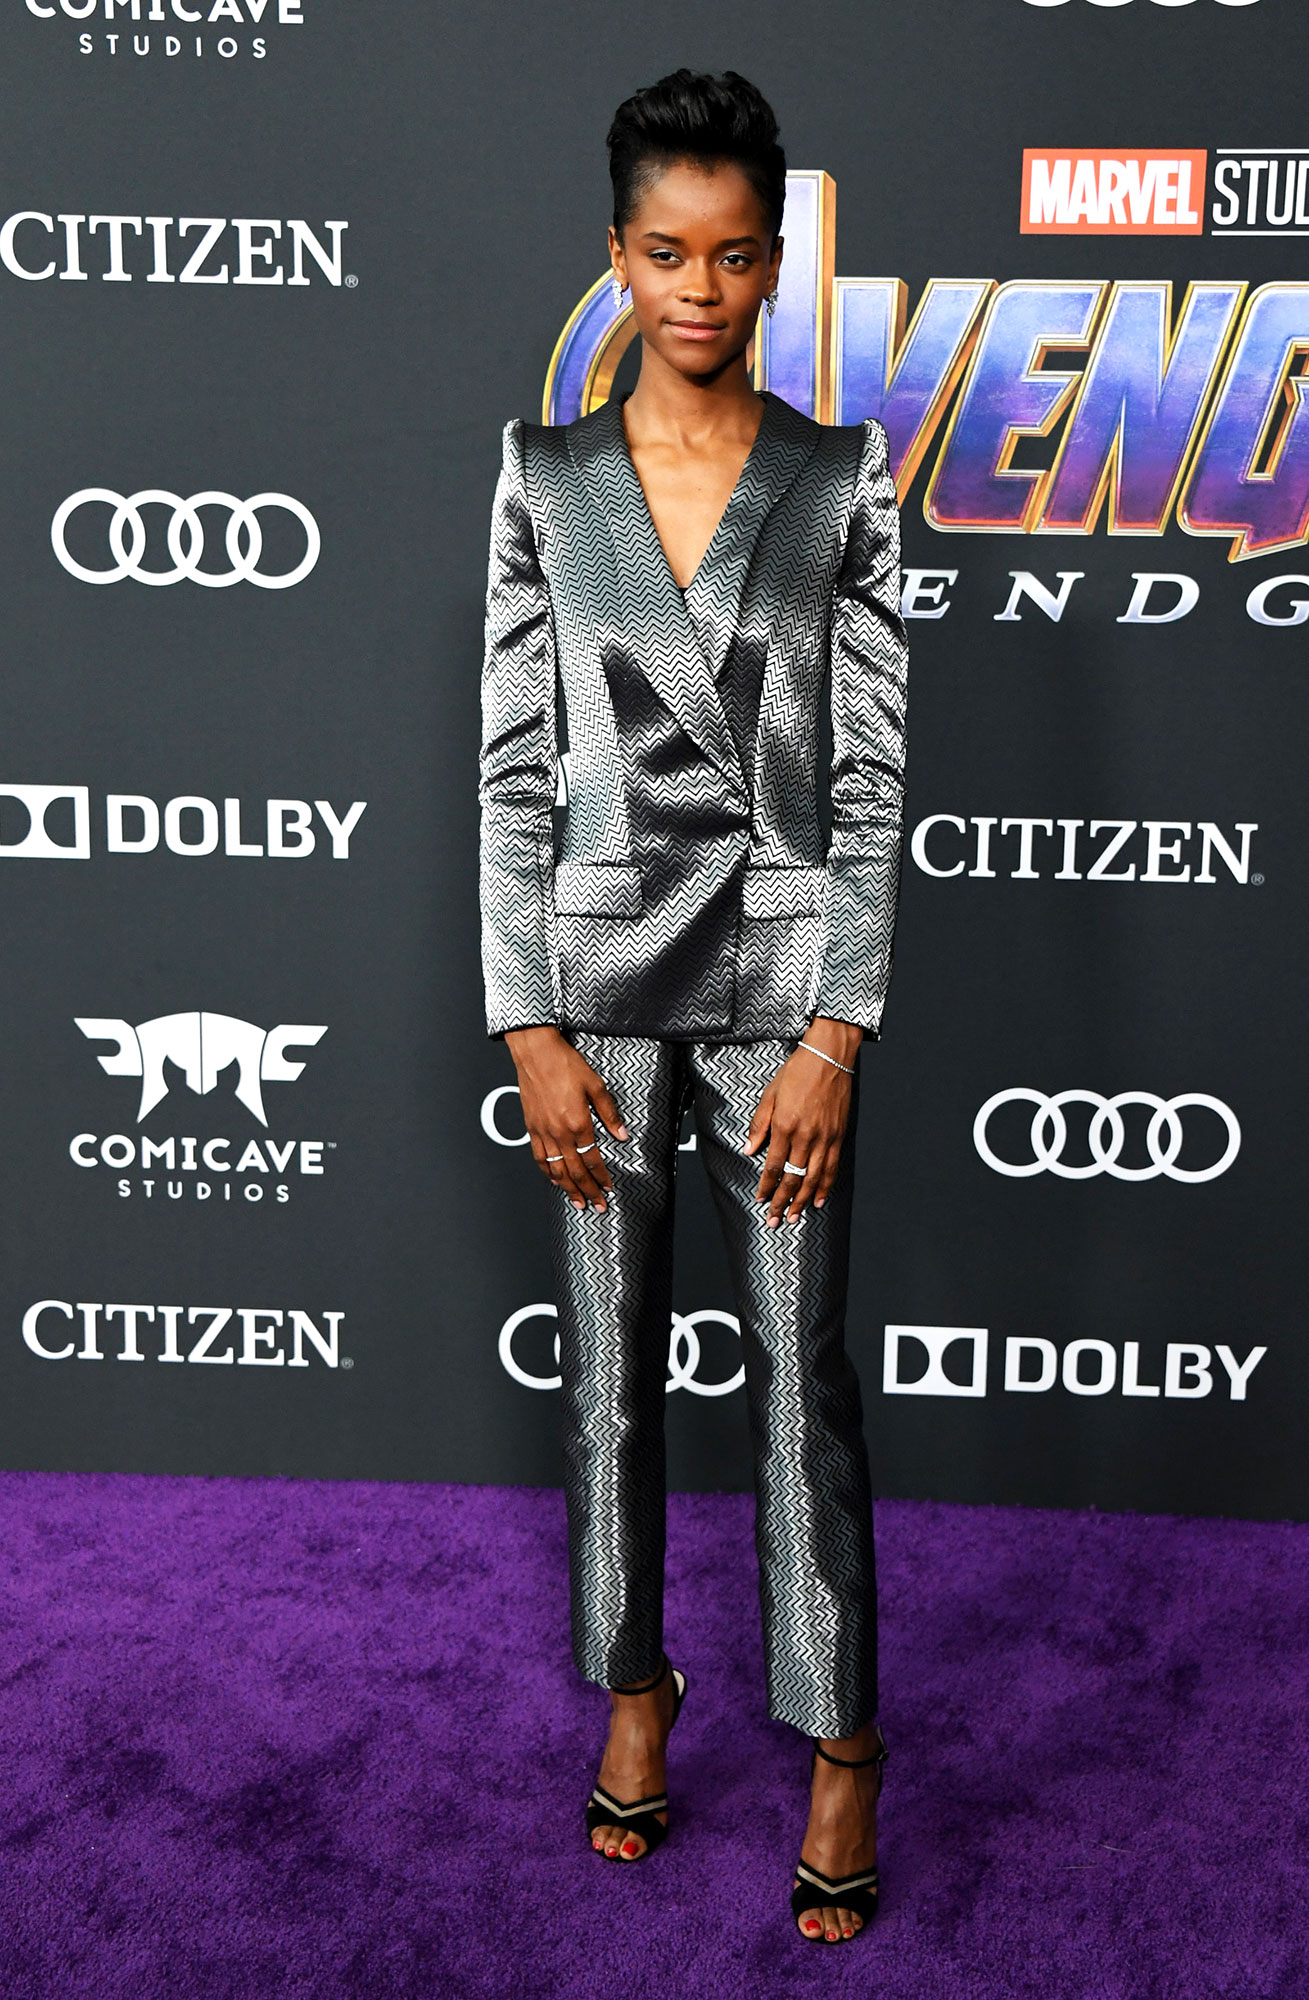 Letitia Wright Avengers Premiere - Wearing a metallic Armani suit and Cartier jewels.